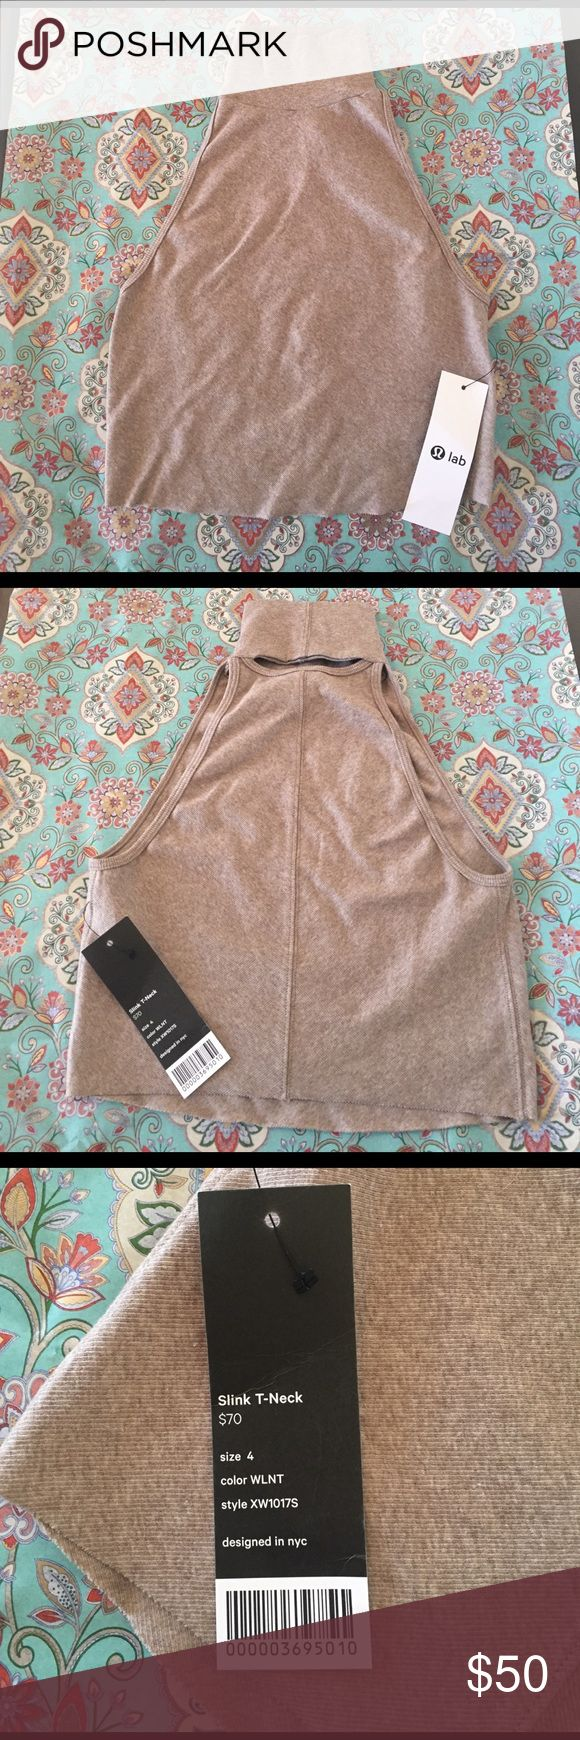 **RARE** NWT Lululemon NYC LAB turtleneck Crop Top NWT- super sexy and modern turtleneck crop top with a little peekaboo in the back neck area. Never worn! Gorgeous tight ribbed cotton with raw cut edge. lululemon athletica Tops Crop Tops